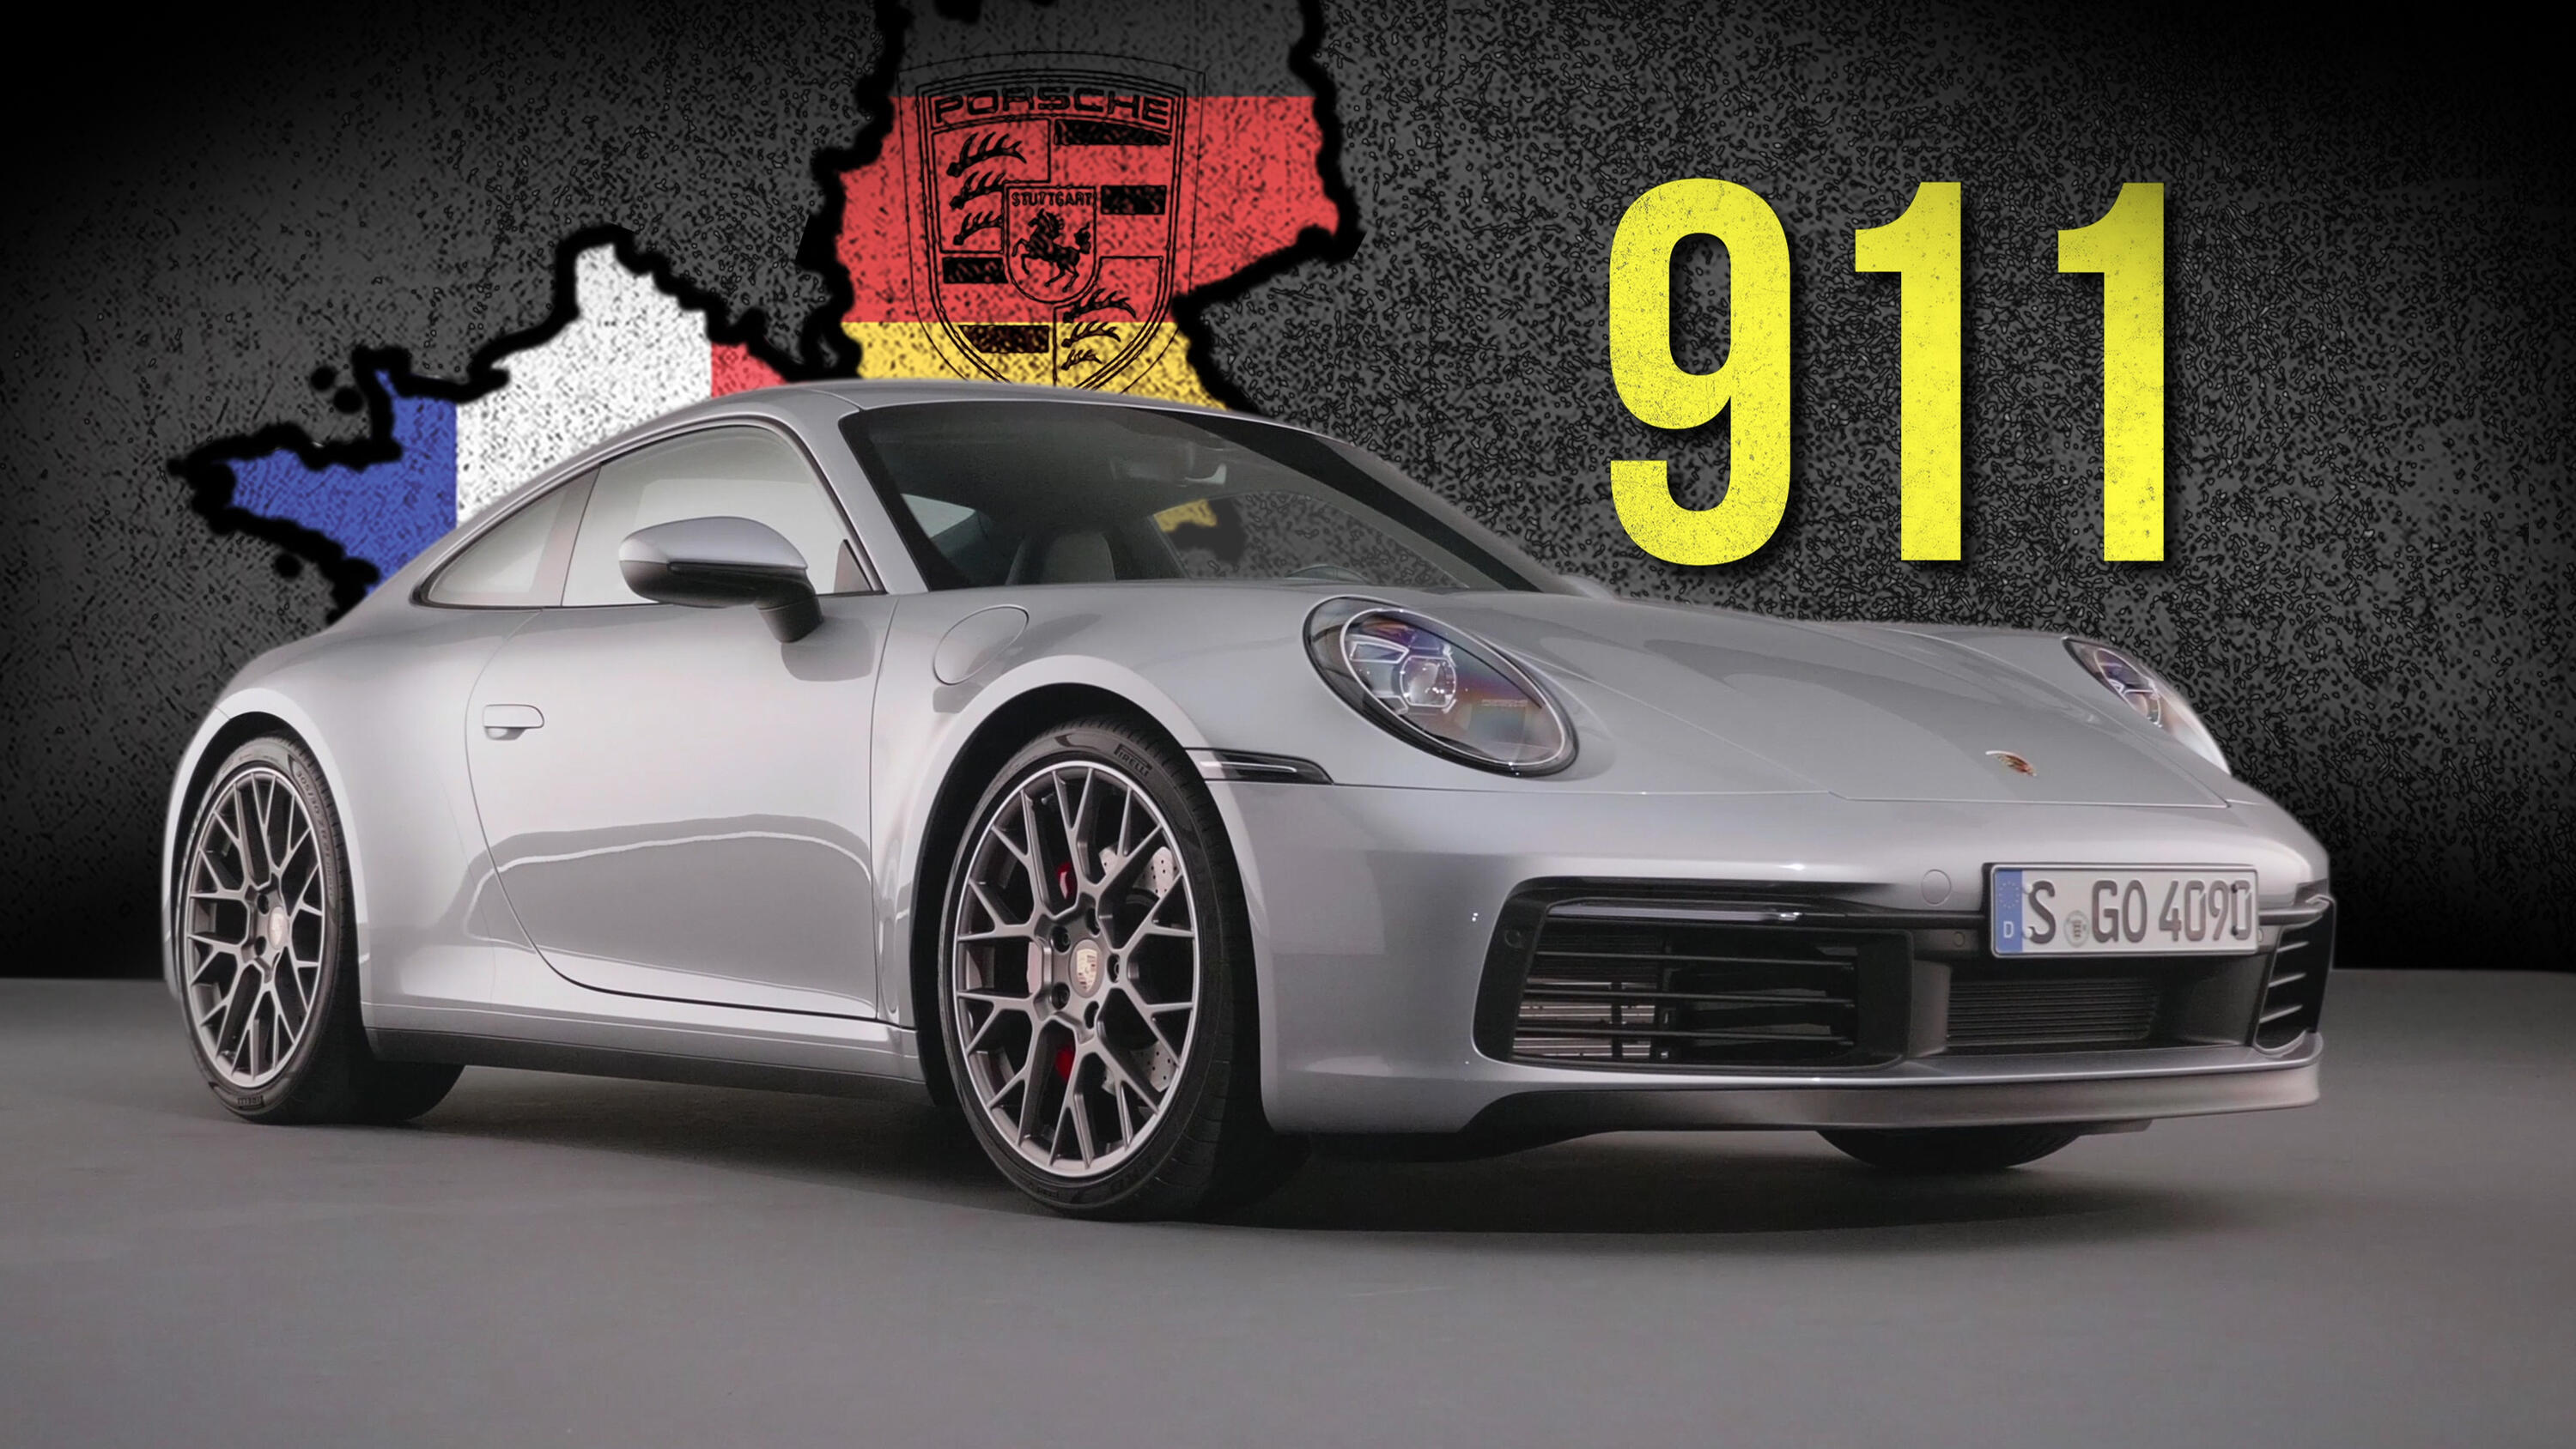 Video: What was the Porsche 911 going to be called?